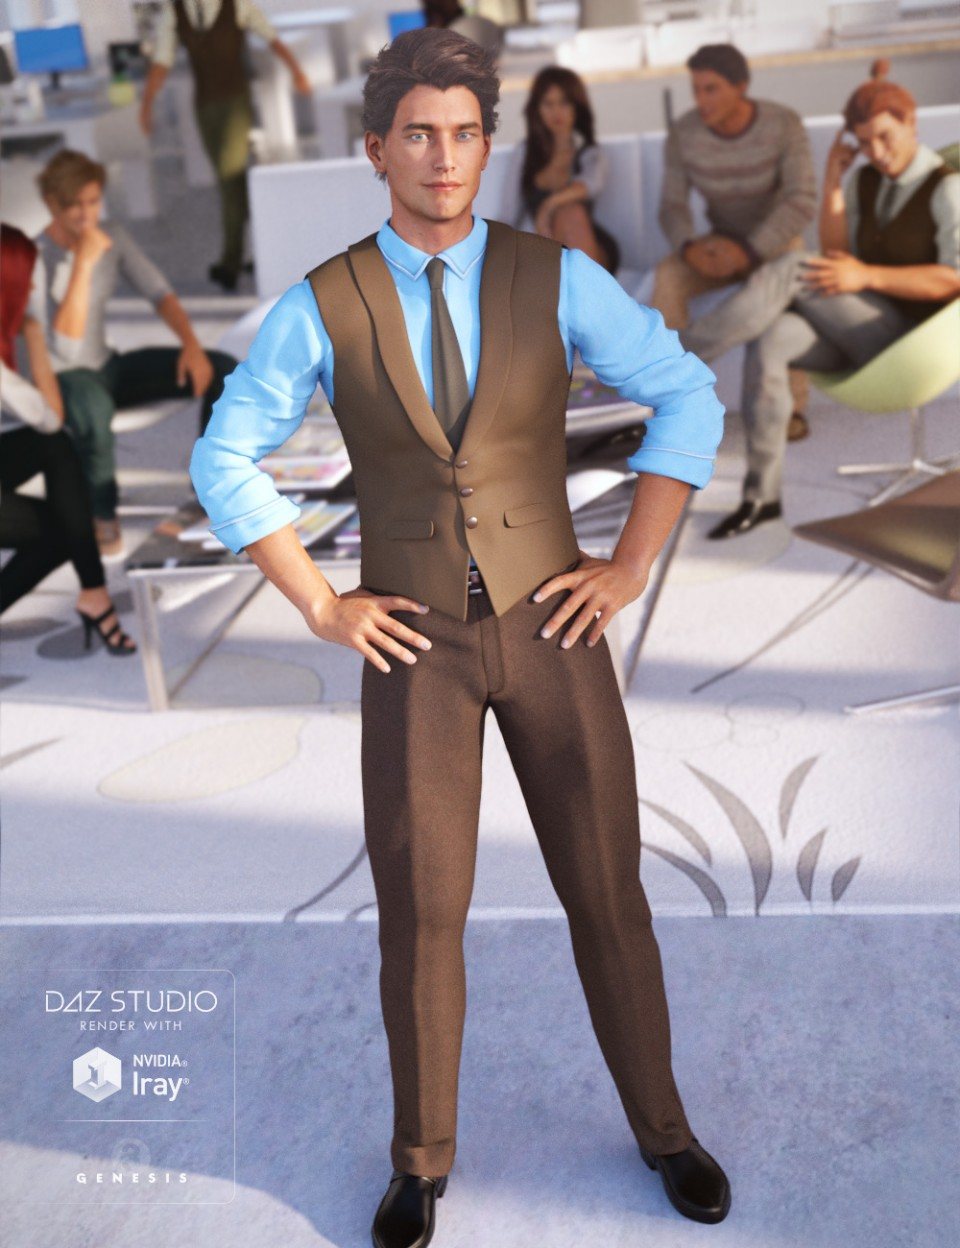 Casual Style for Genesis 3 Male(s)_DAZ3D下载站